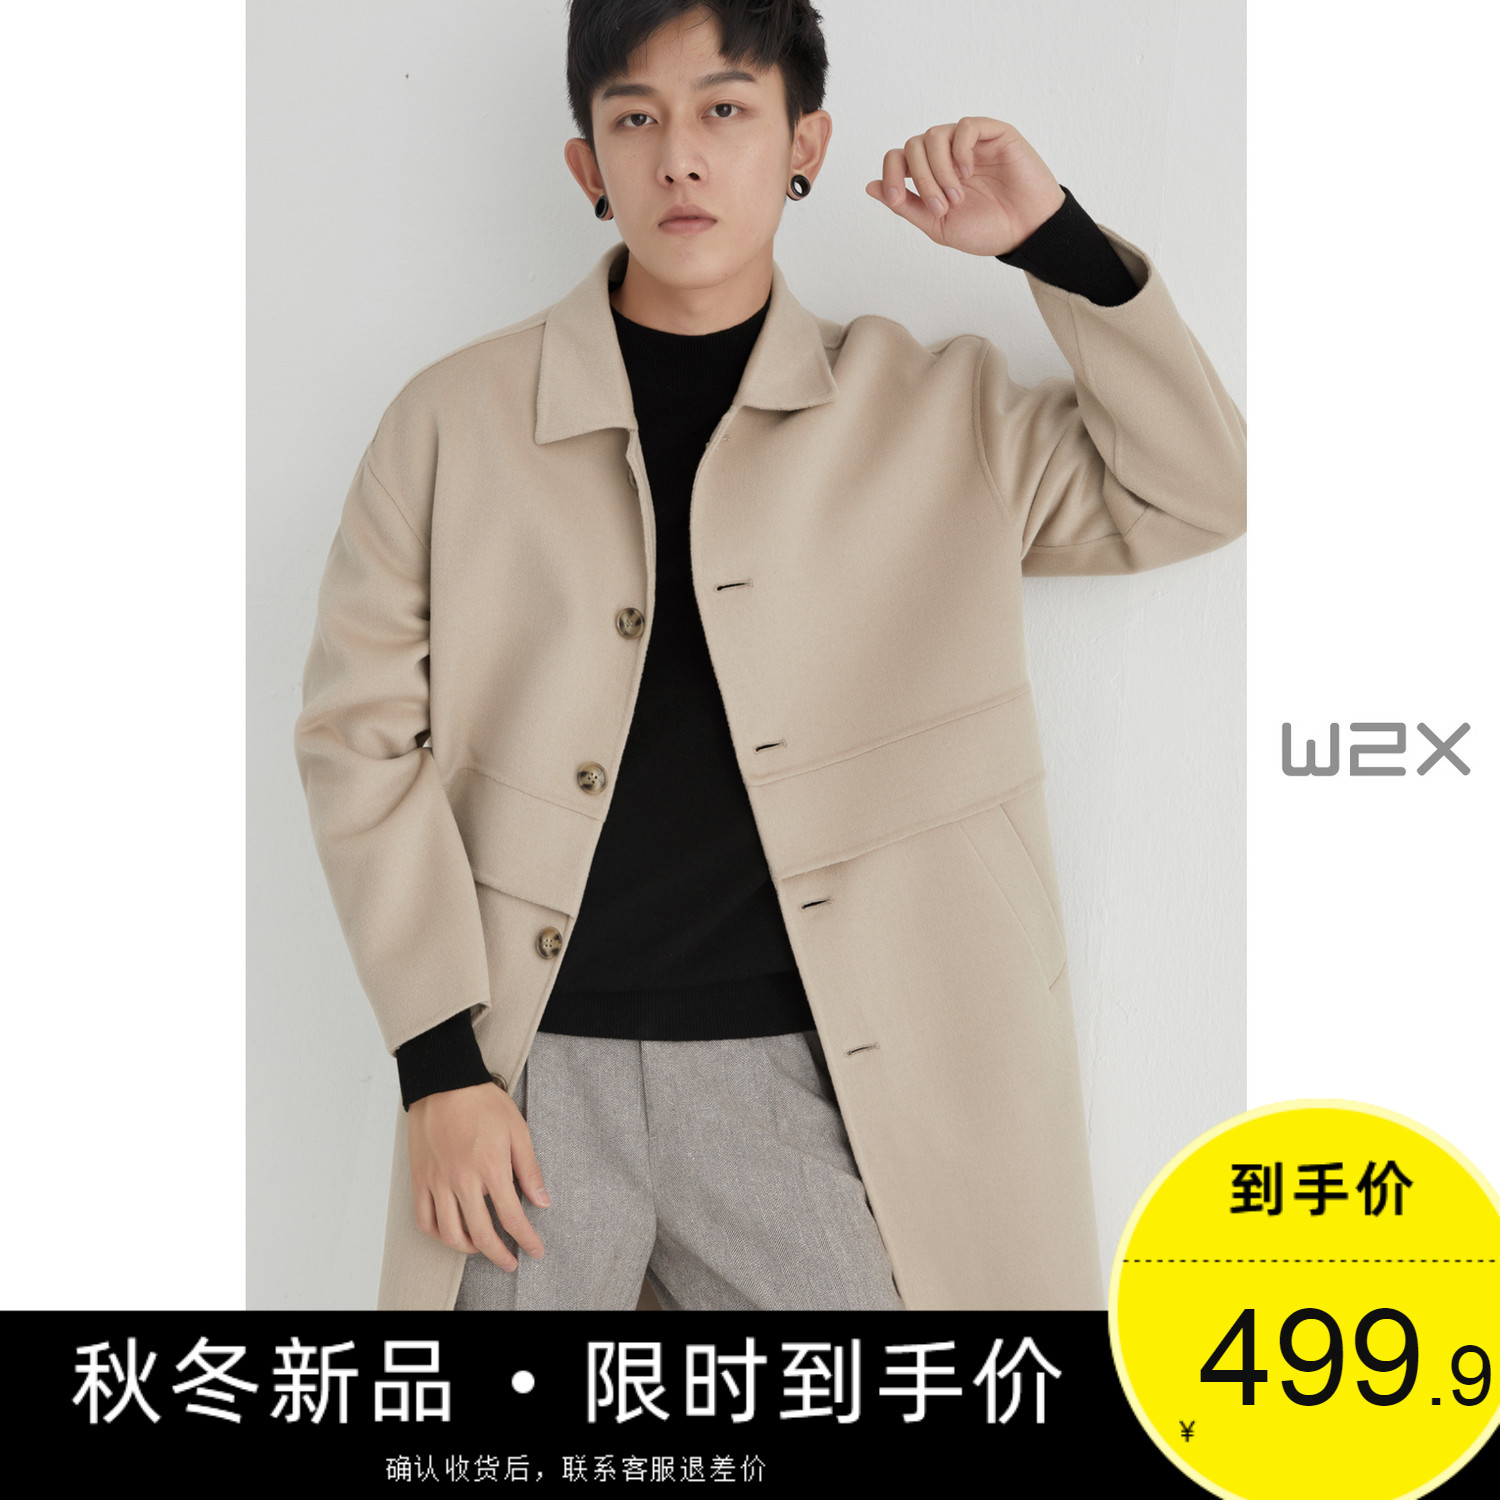 w2x double-sided woolen woolen coat men's mid-length non-cashmere casual windbreaker thickened Nizi jacket in autumn and winter